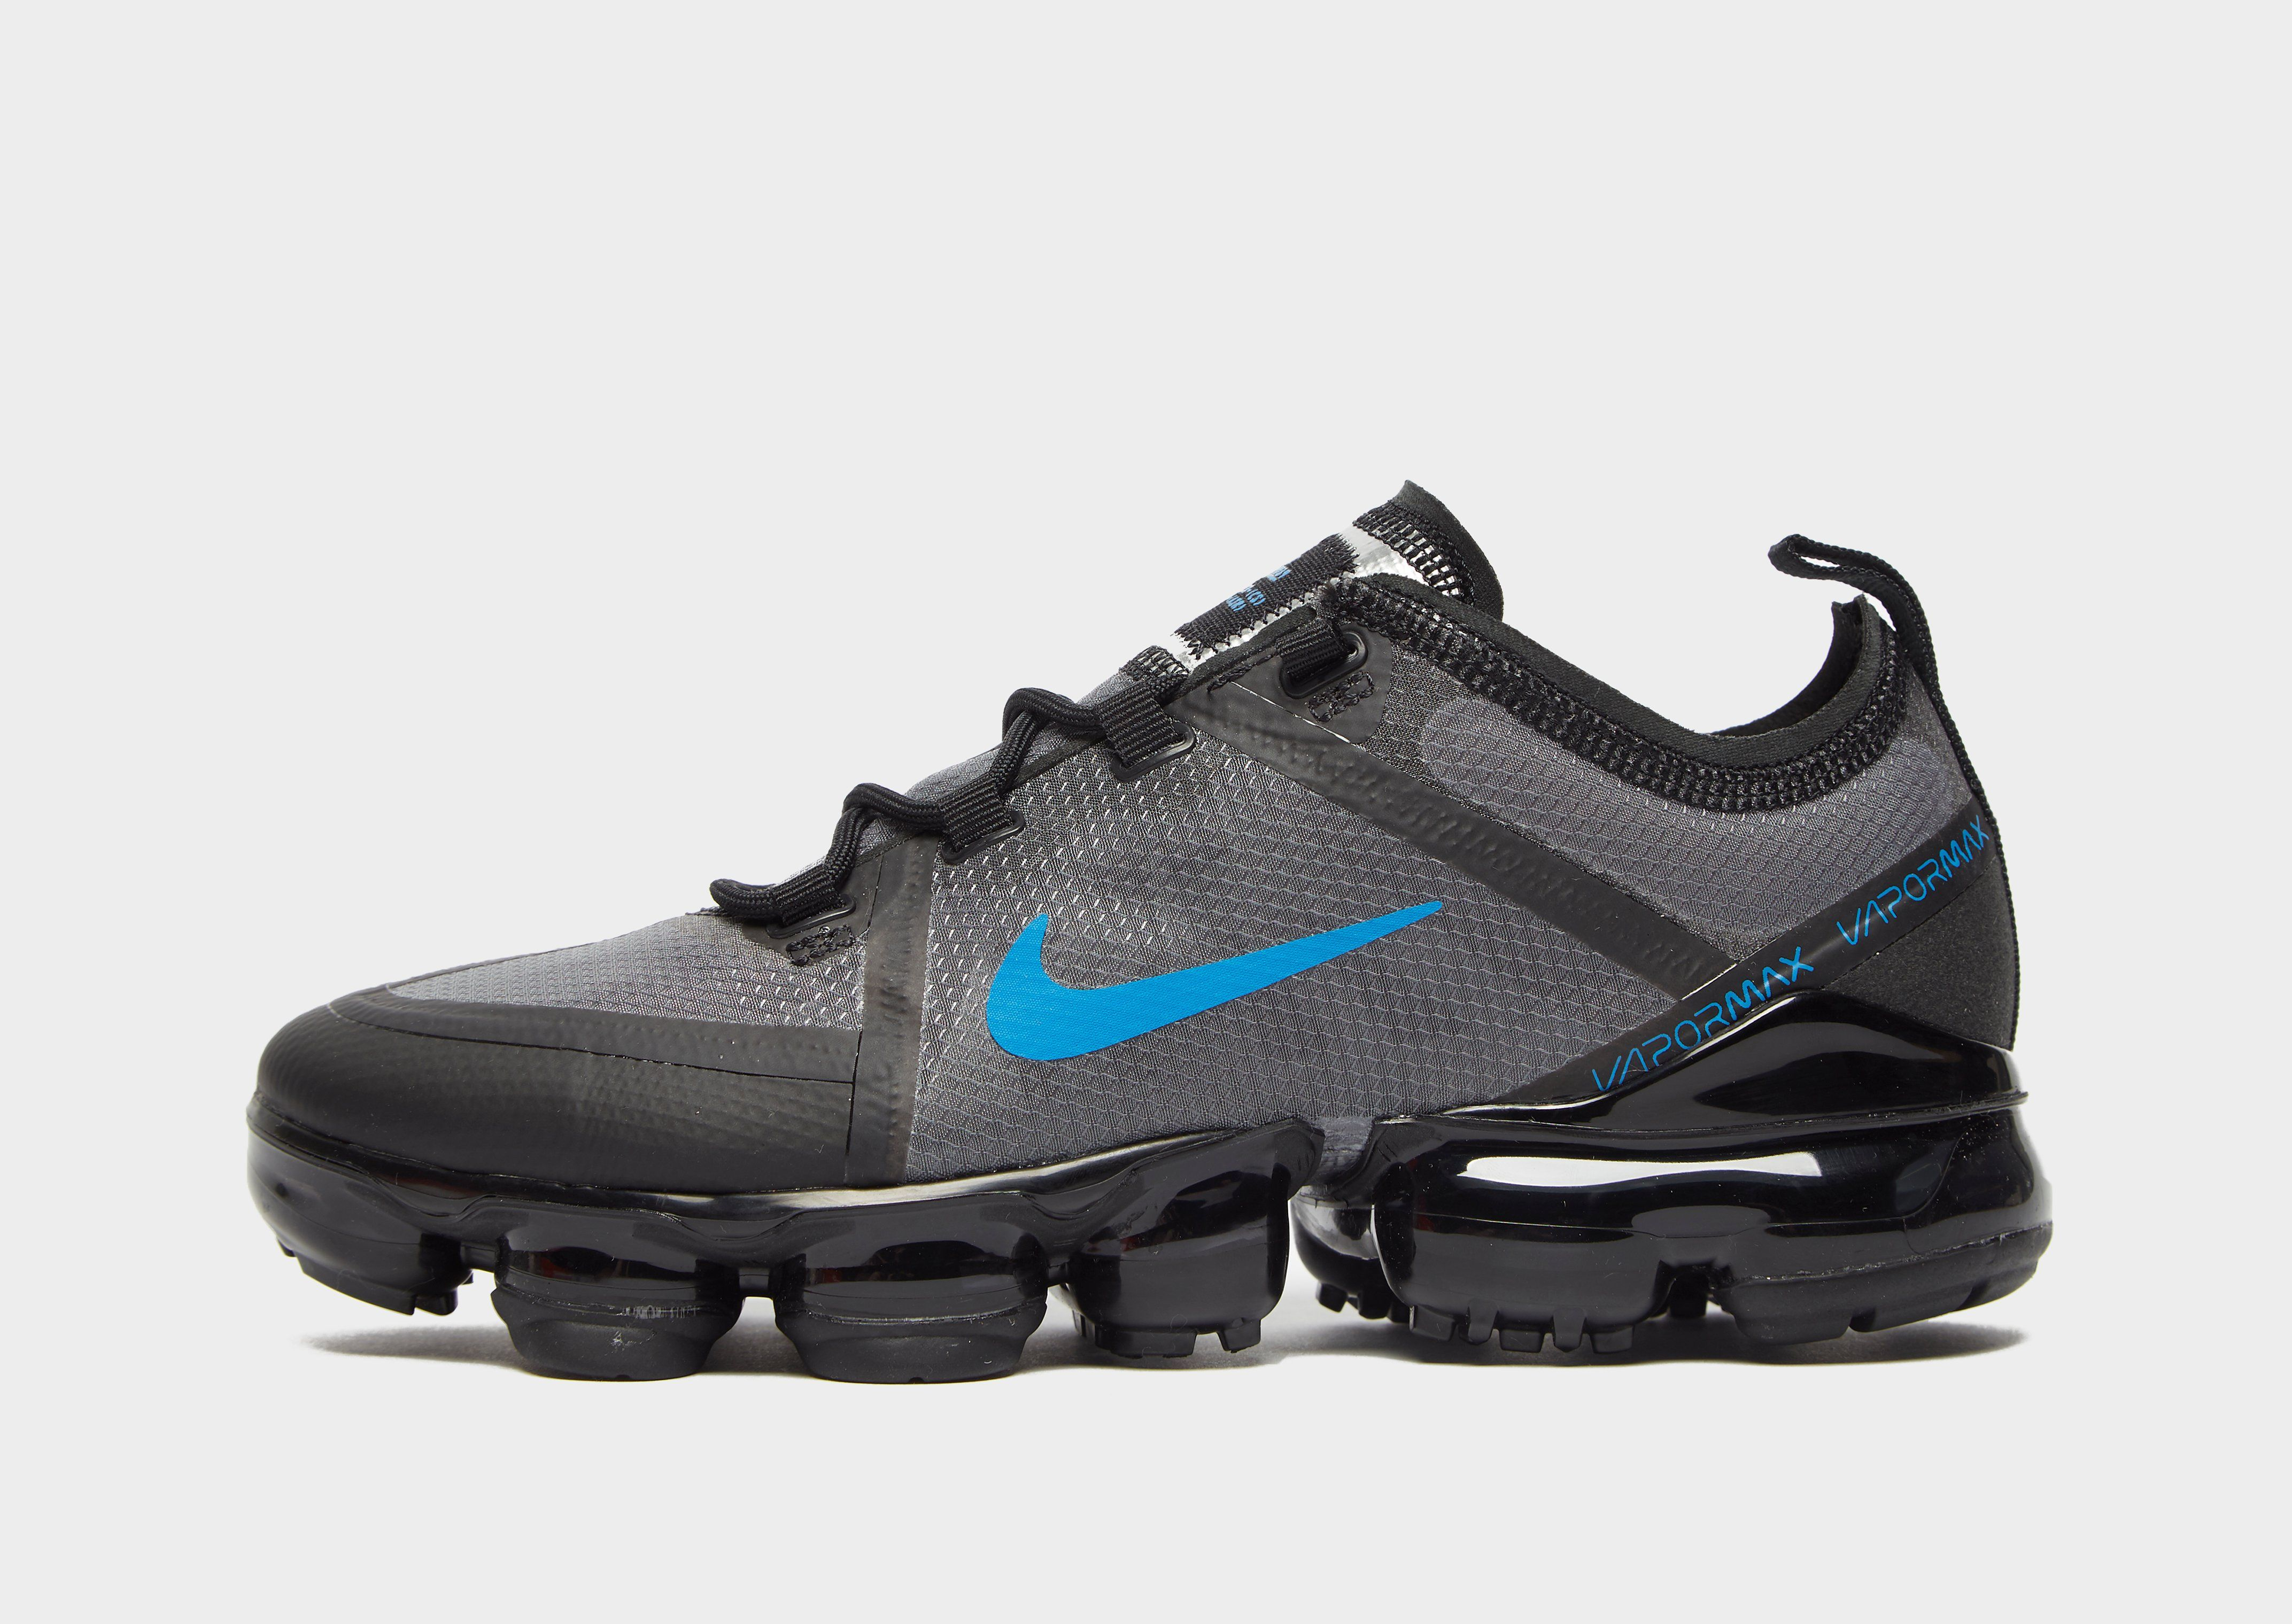 lowest price 03ef4 6bf76 Nike Air VaporMax 2019 Older Kids' Shoe | JD Sports